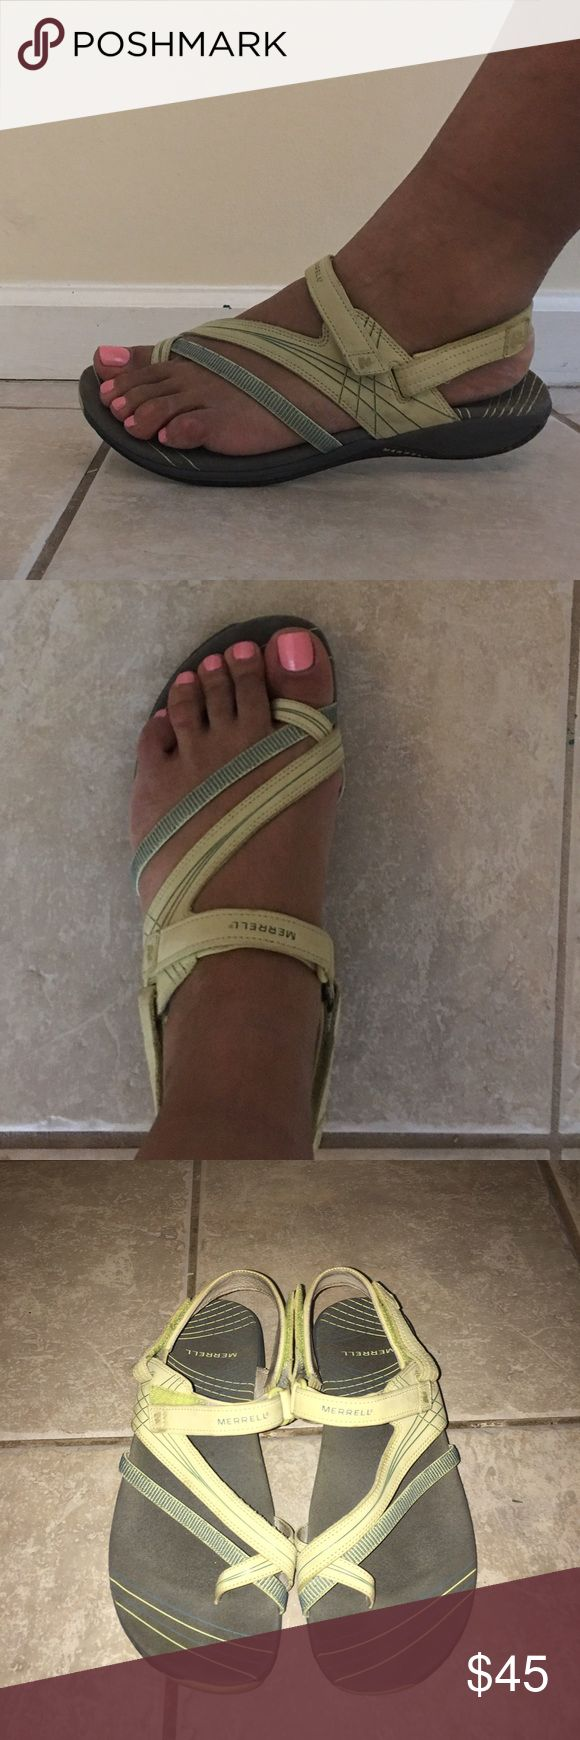 Merrell Sandals These adorable Merrell sandals are very comfortable. These sandals are a pale lime, gray and blue color. They wear like a sneaker, but allow your feet to breathe. In excellent condition. Merrell Shoes Sandals